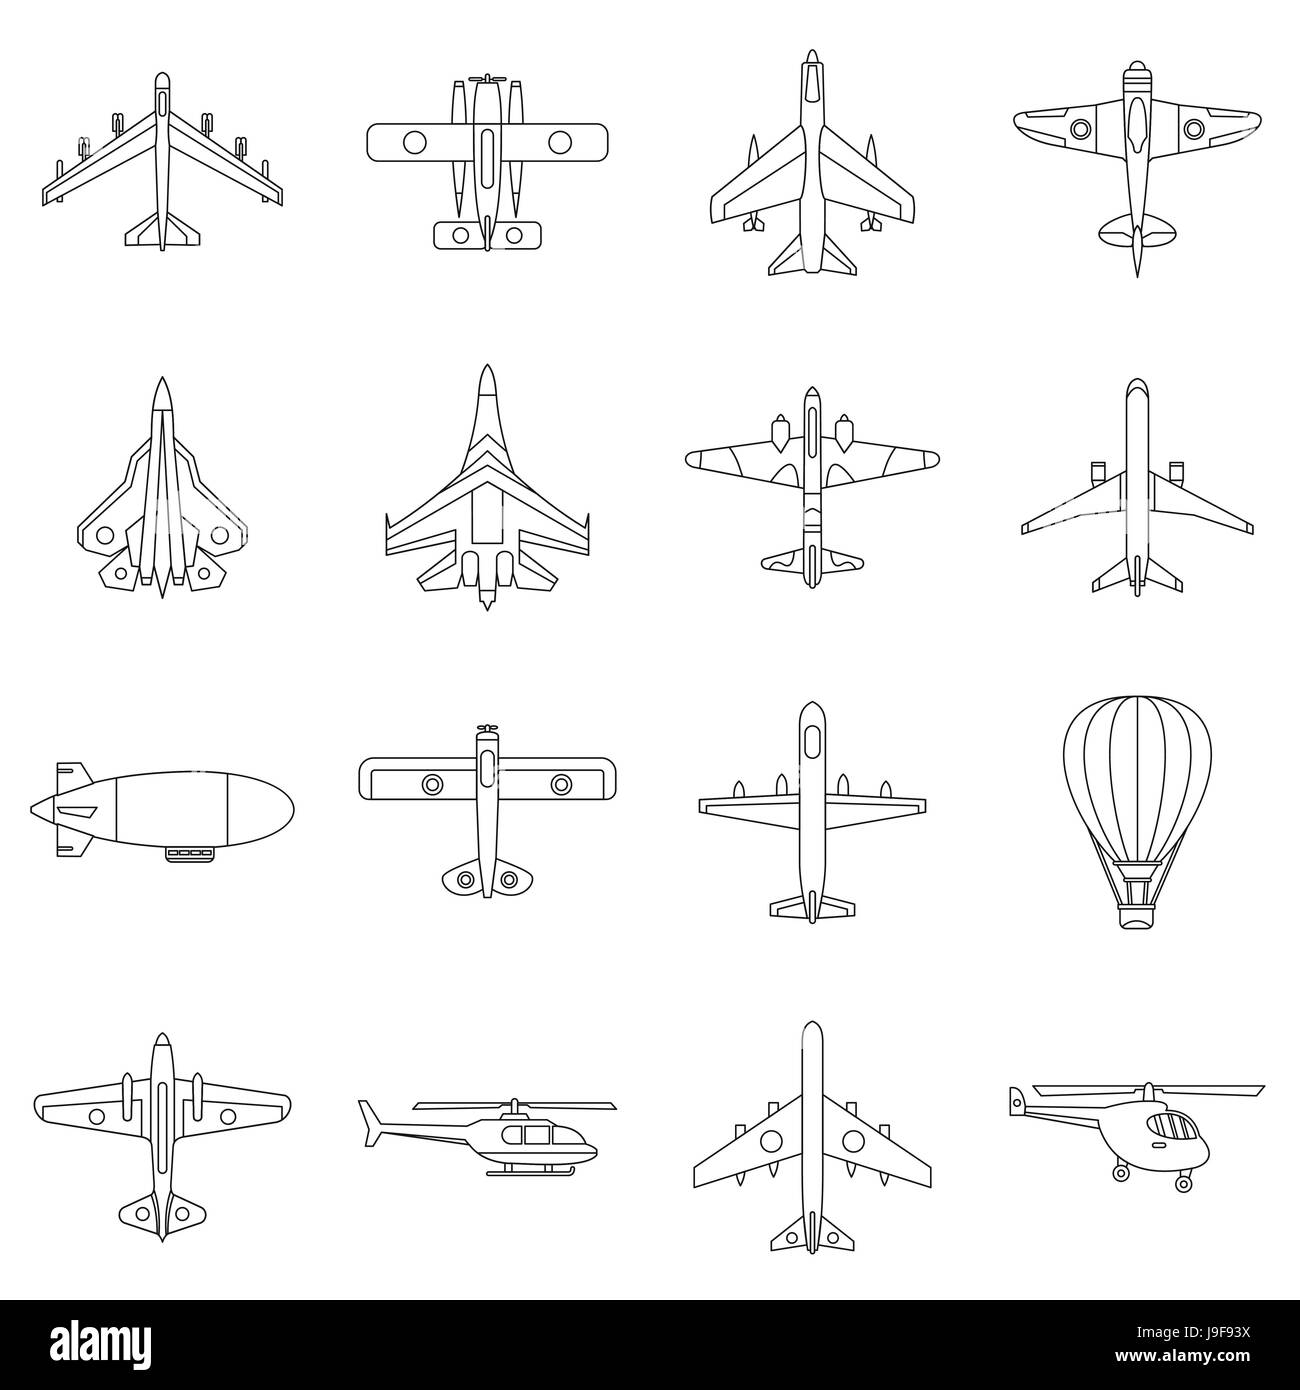 Aviation icons set, outline style - Stock Image